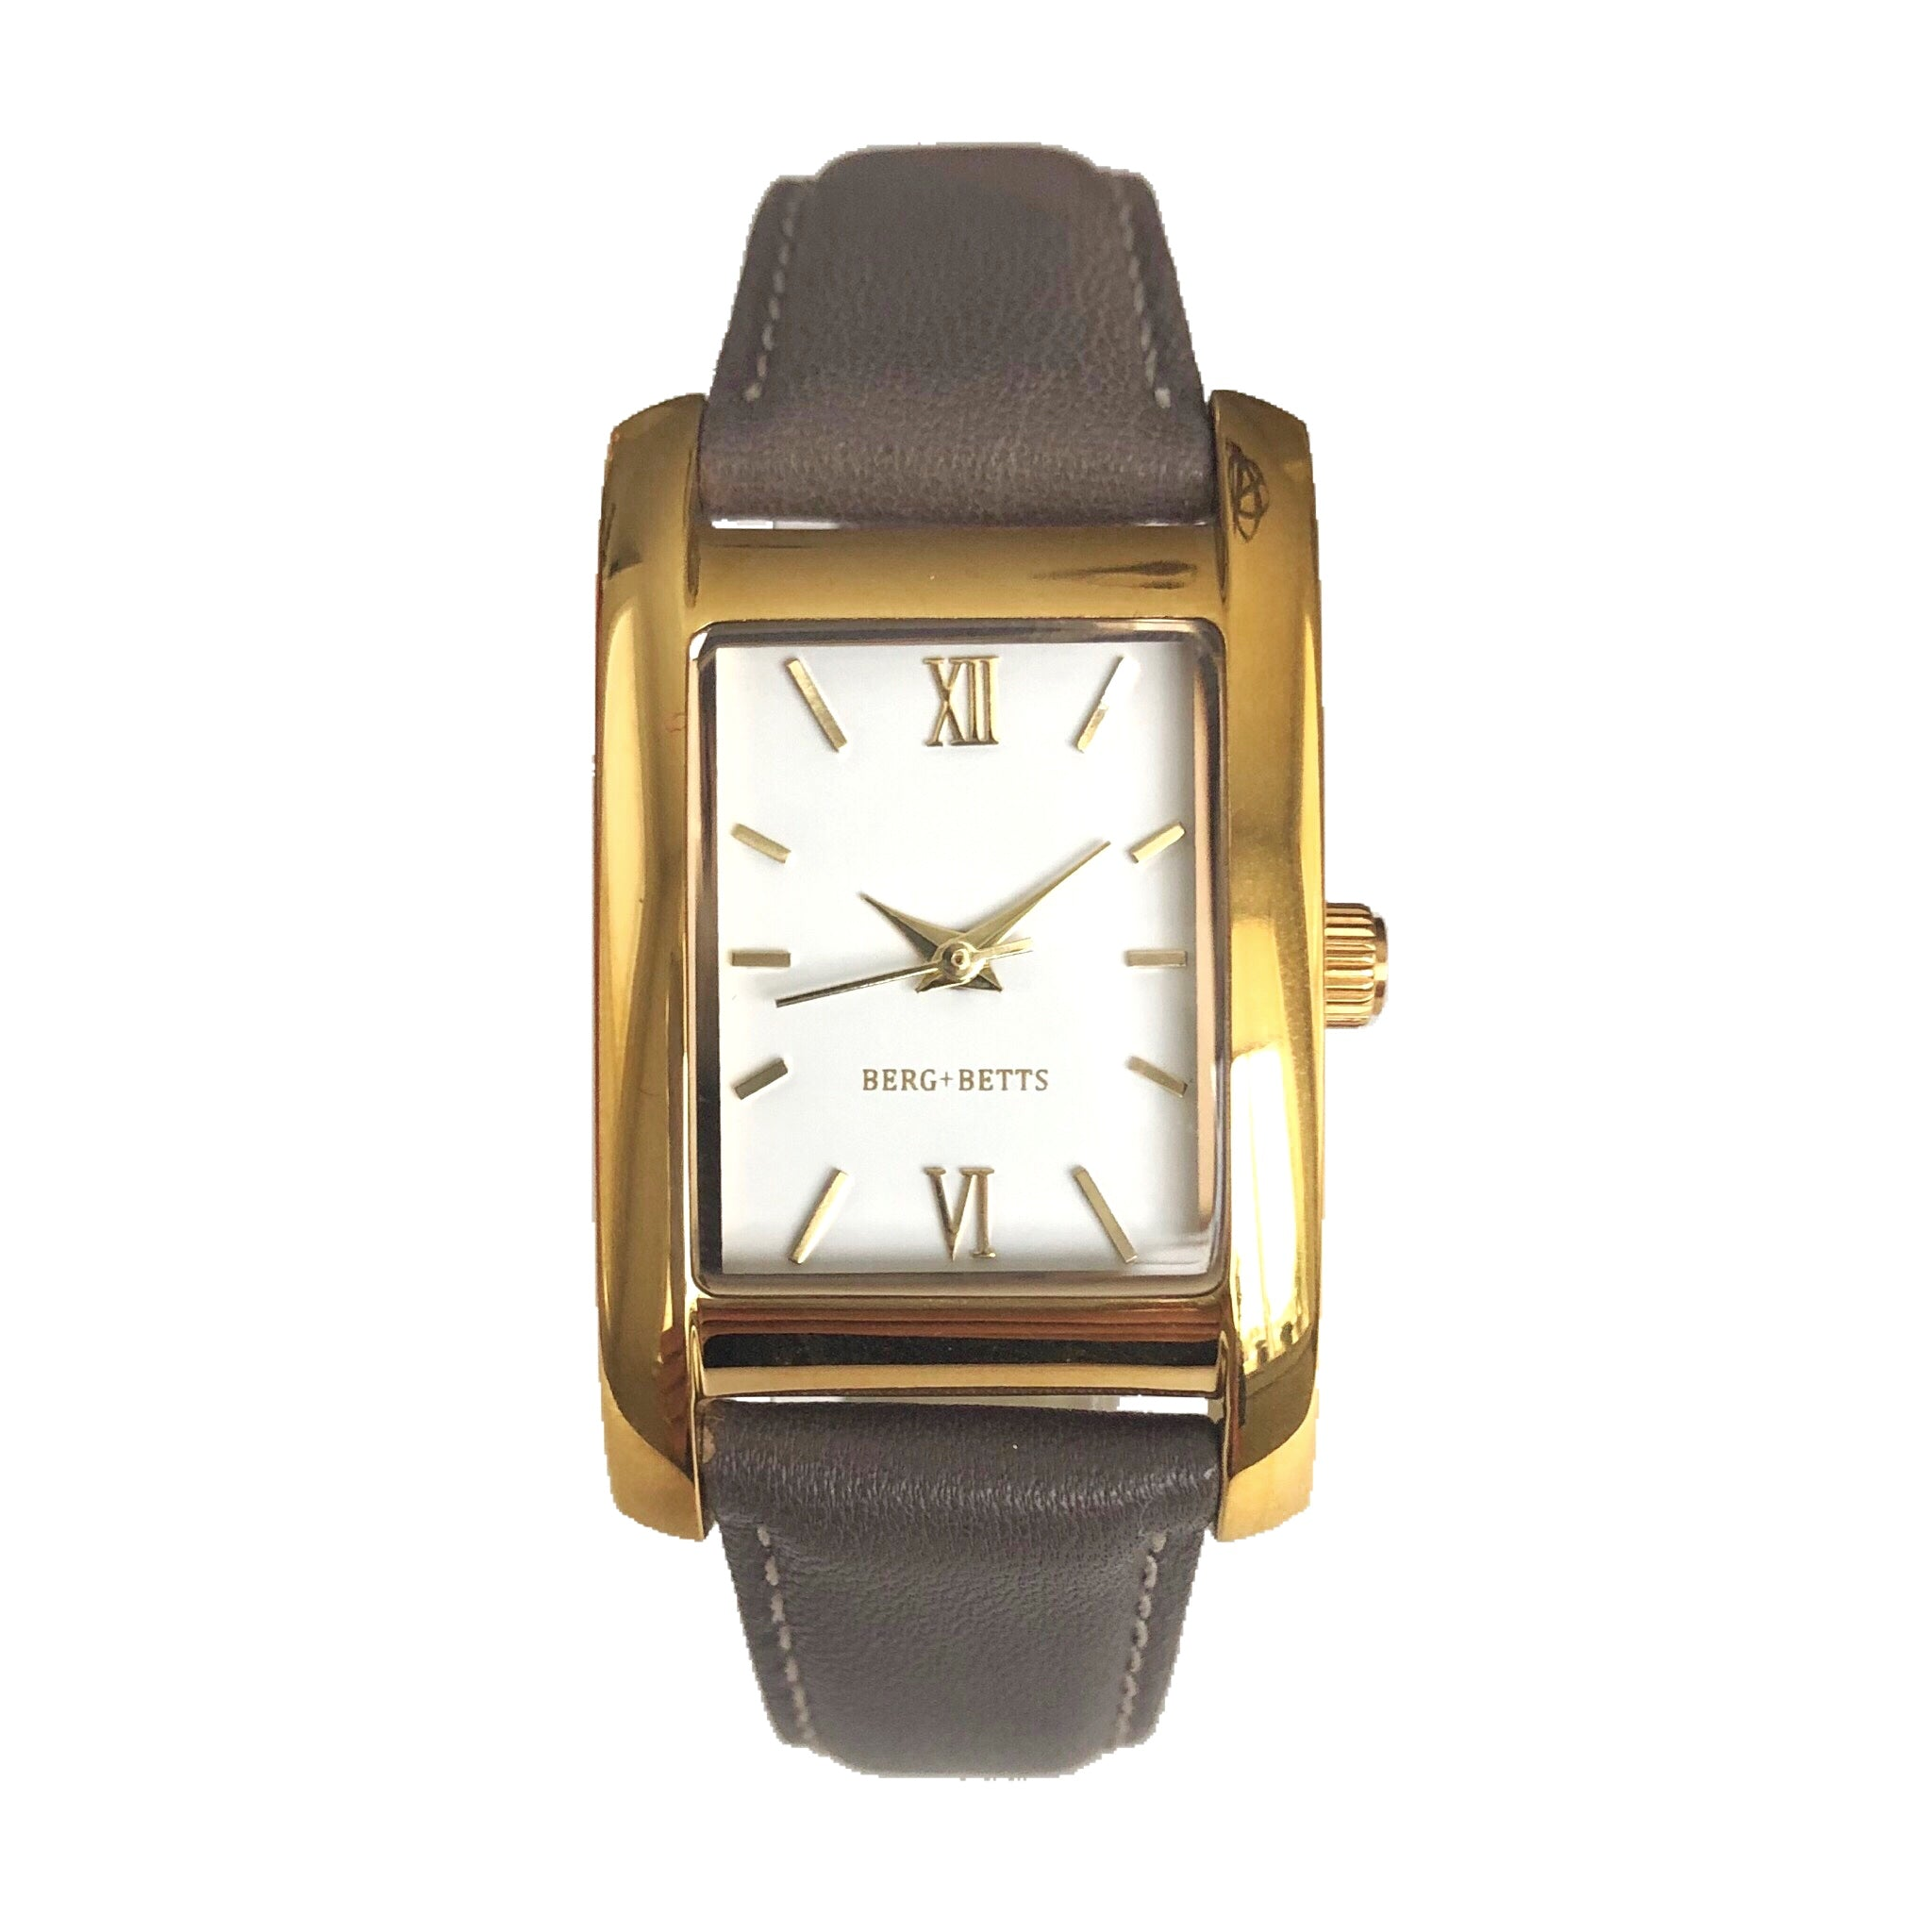 Minimalistic classic rectangular watch design perfect for your sustainable capsule wardrobe